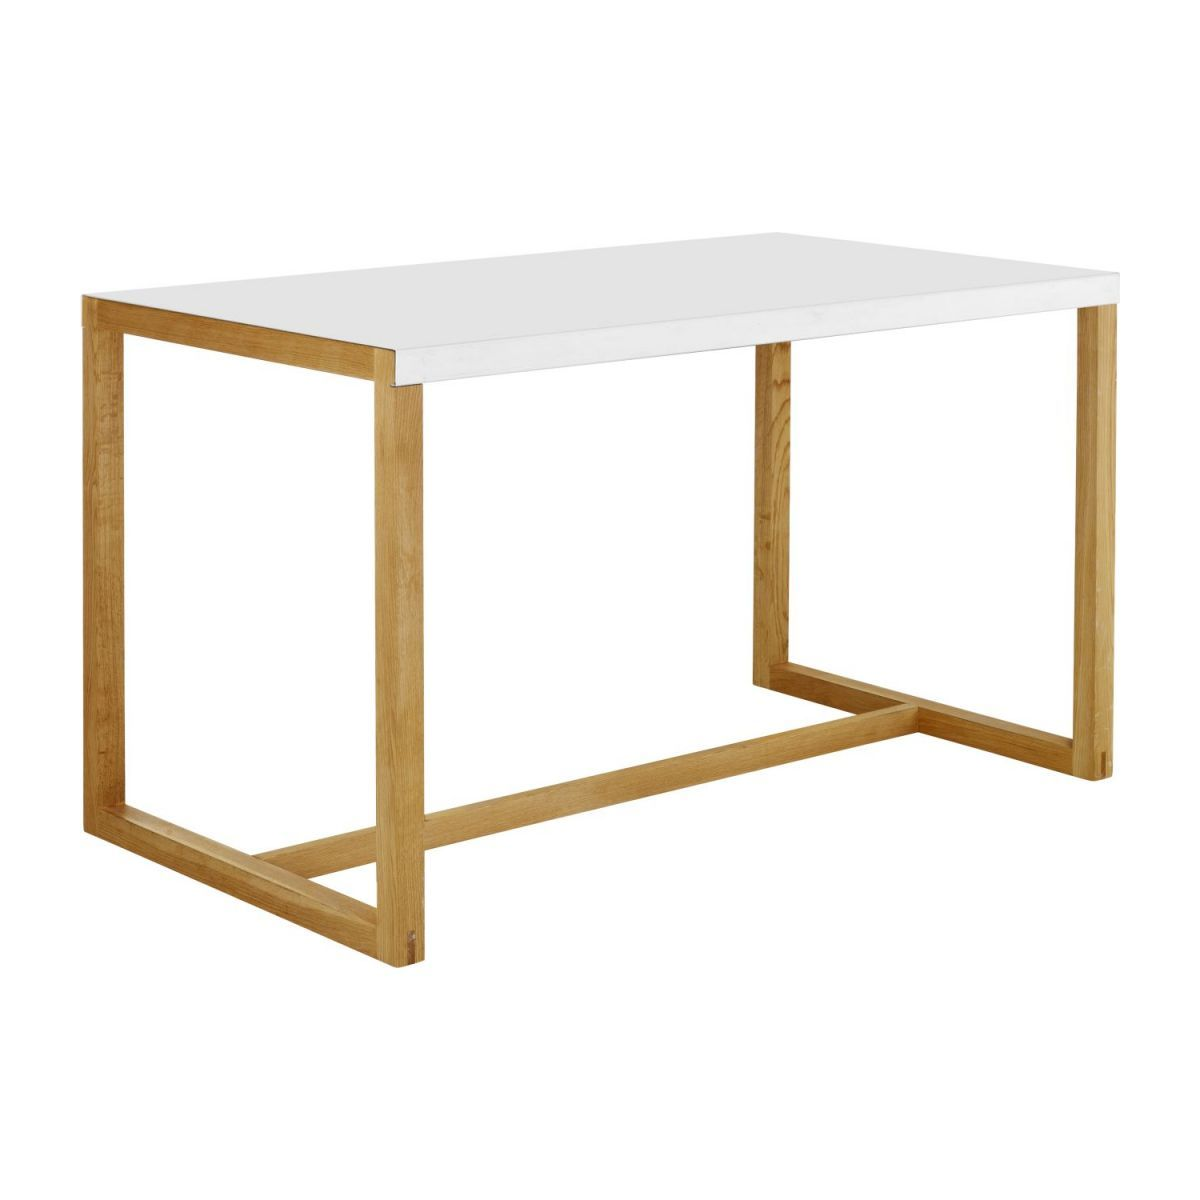 Kilo Tisch Table Basse Blanc Mobilier De Salon Table Basse Rectangulaire